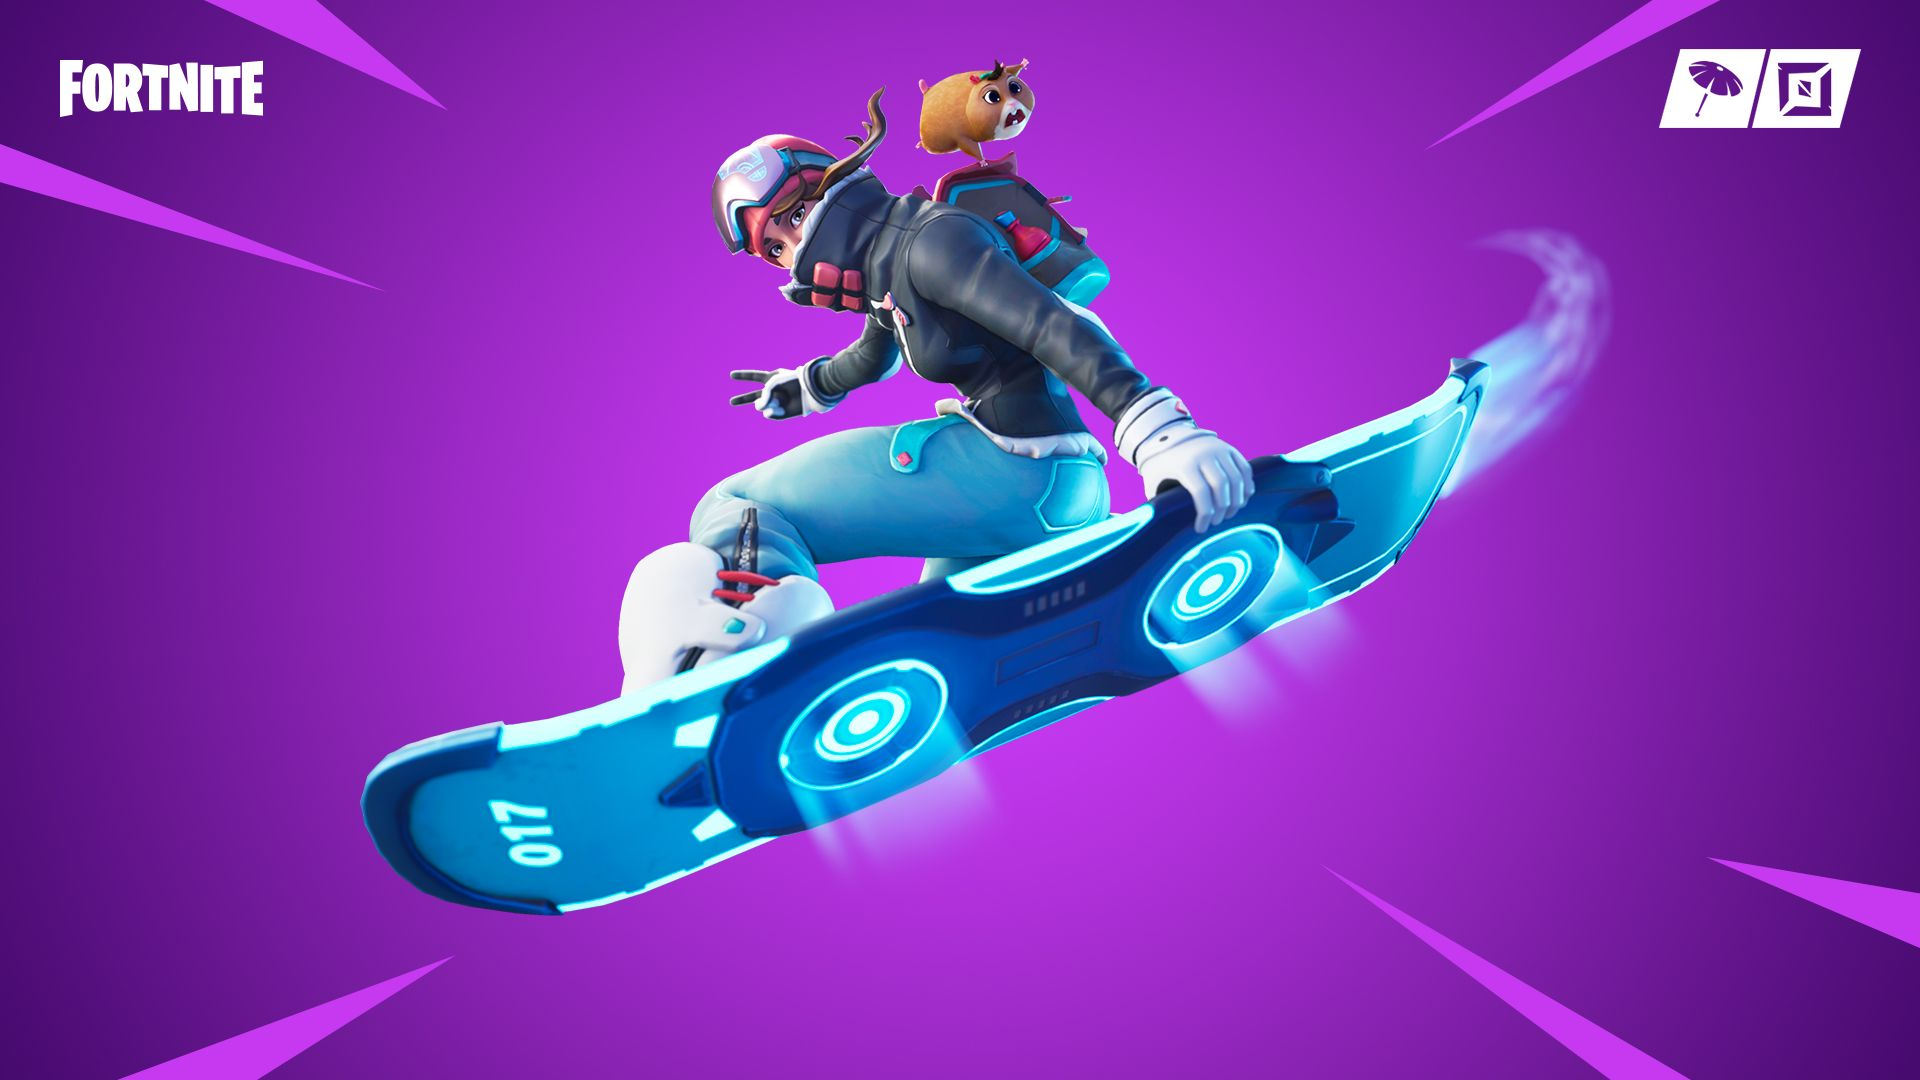 Fortnite Content Update 740 patch notes